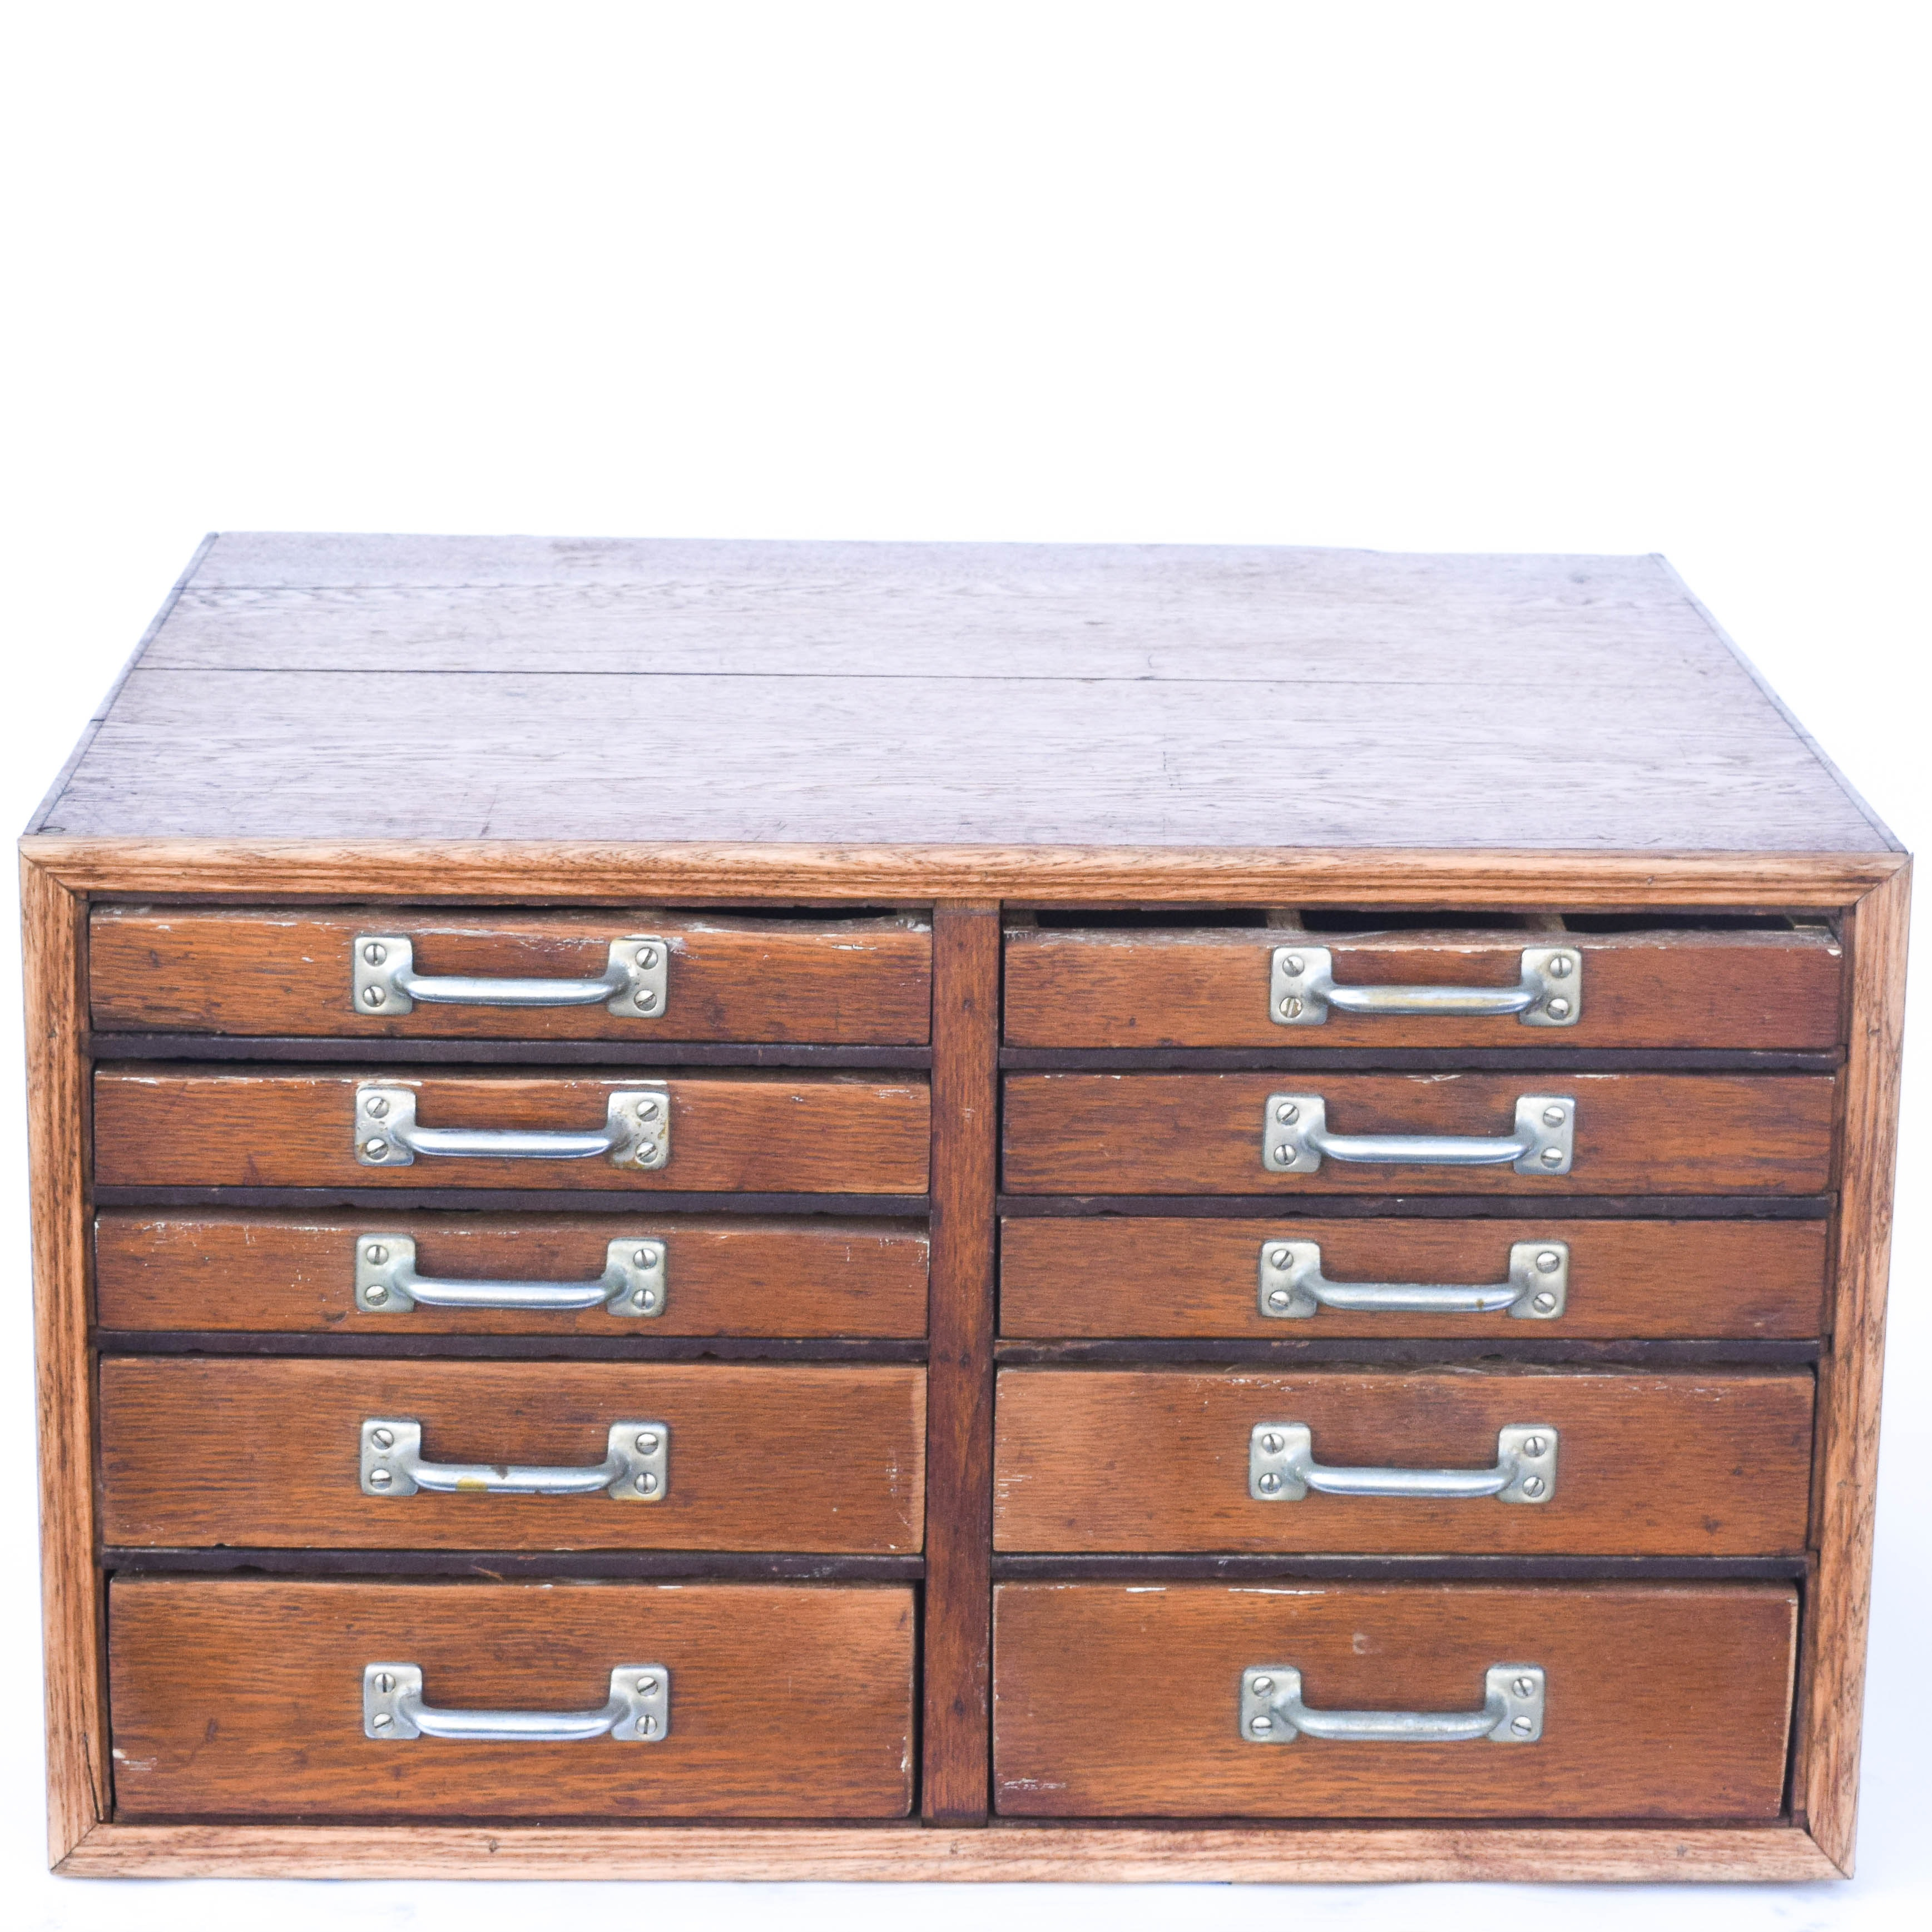 Antique Oak Tool Chest with Ten Drawers